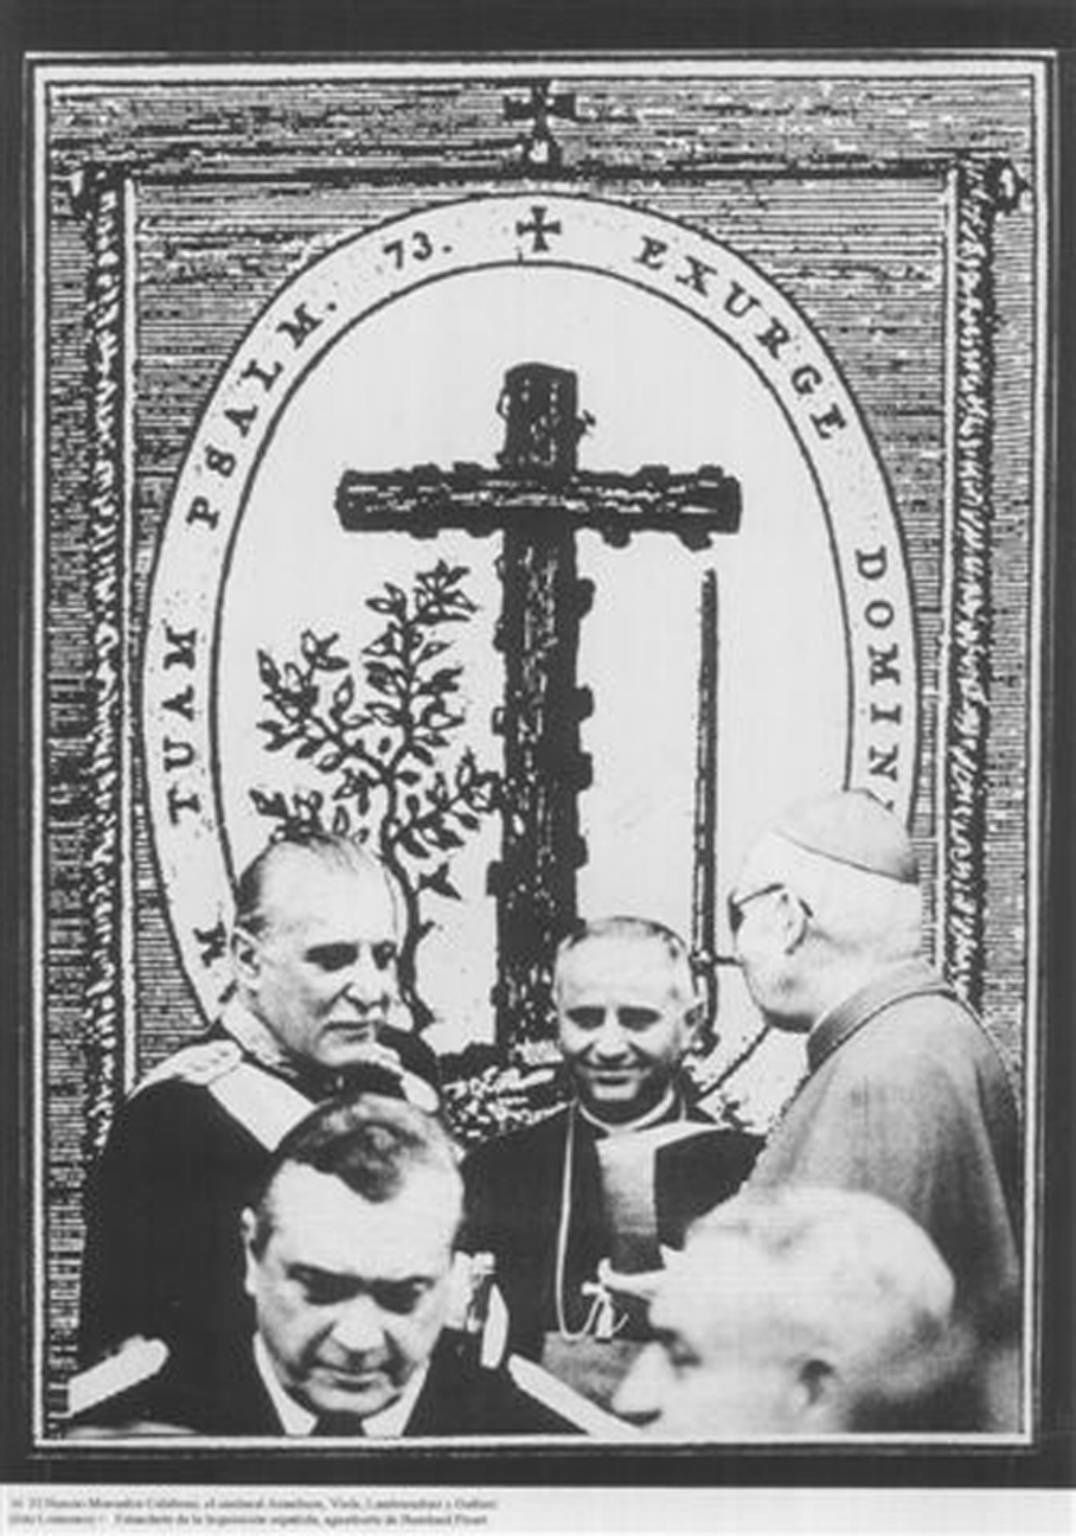 Nuncio Monsignor Calabresi, Cardinal Aramburu, Viola, Lambruschini and Galtieri (Photo: Loiácono) + 'Banner of the Spanish Inquisition',